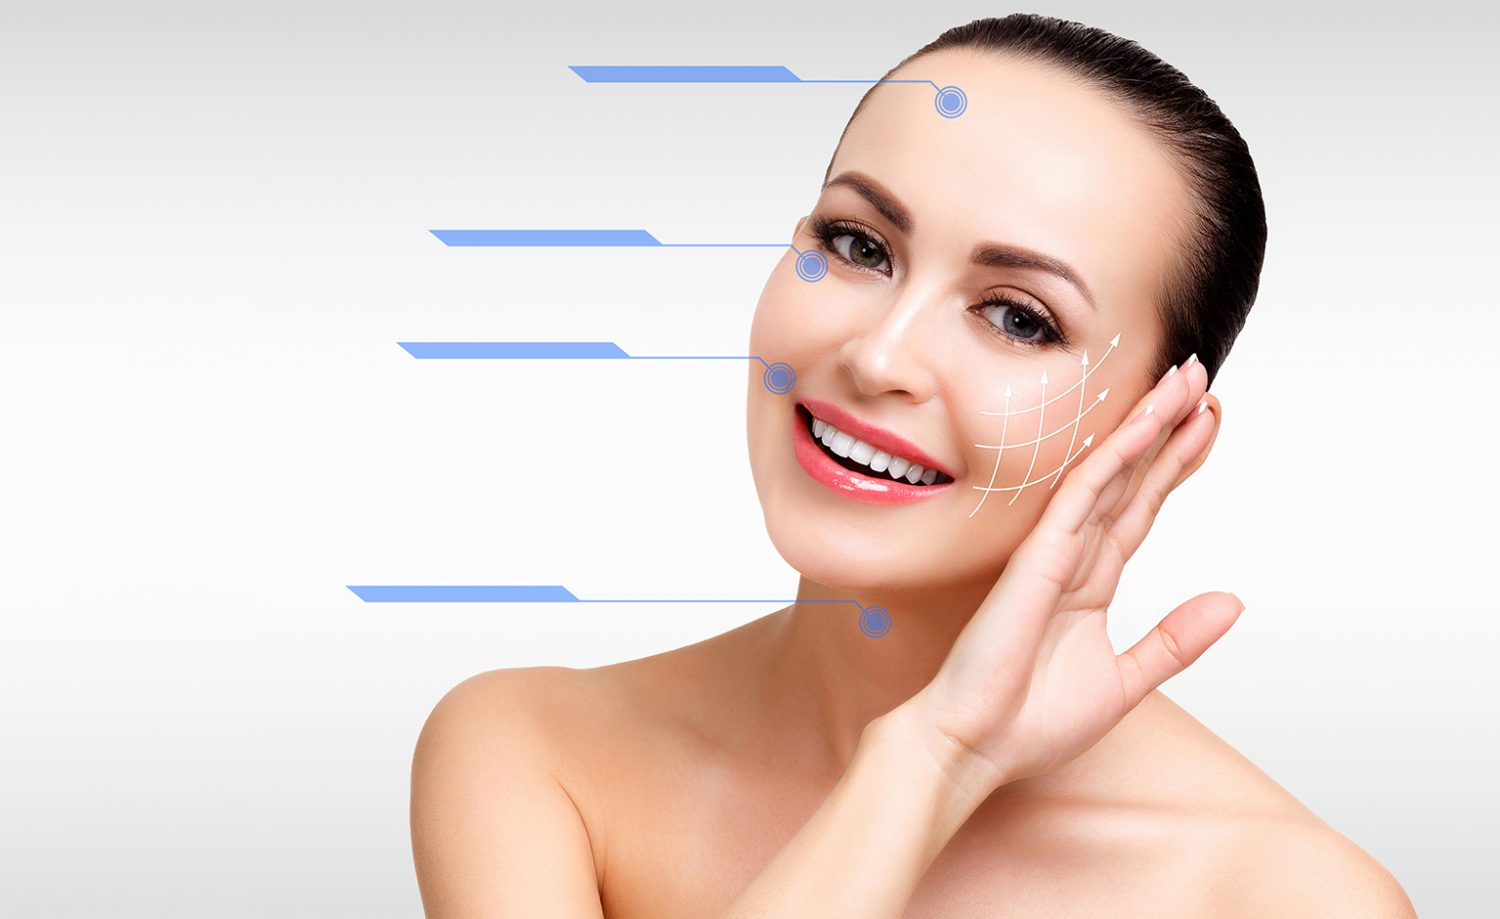 Botox & Derma Fillers Corse £895 50 - Special Price